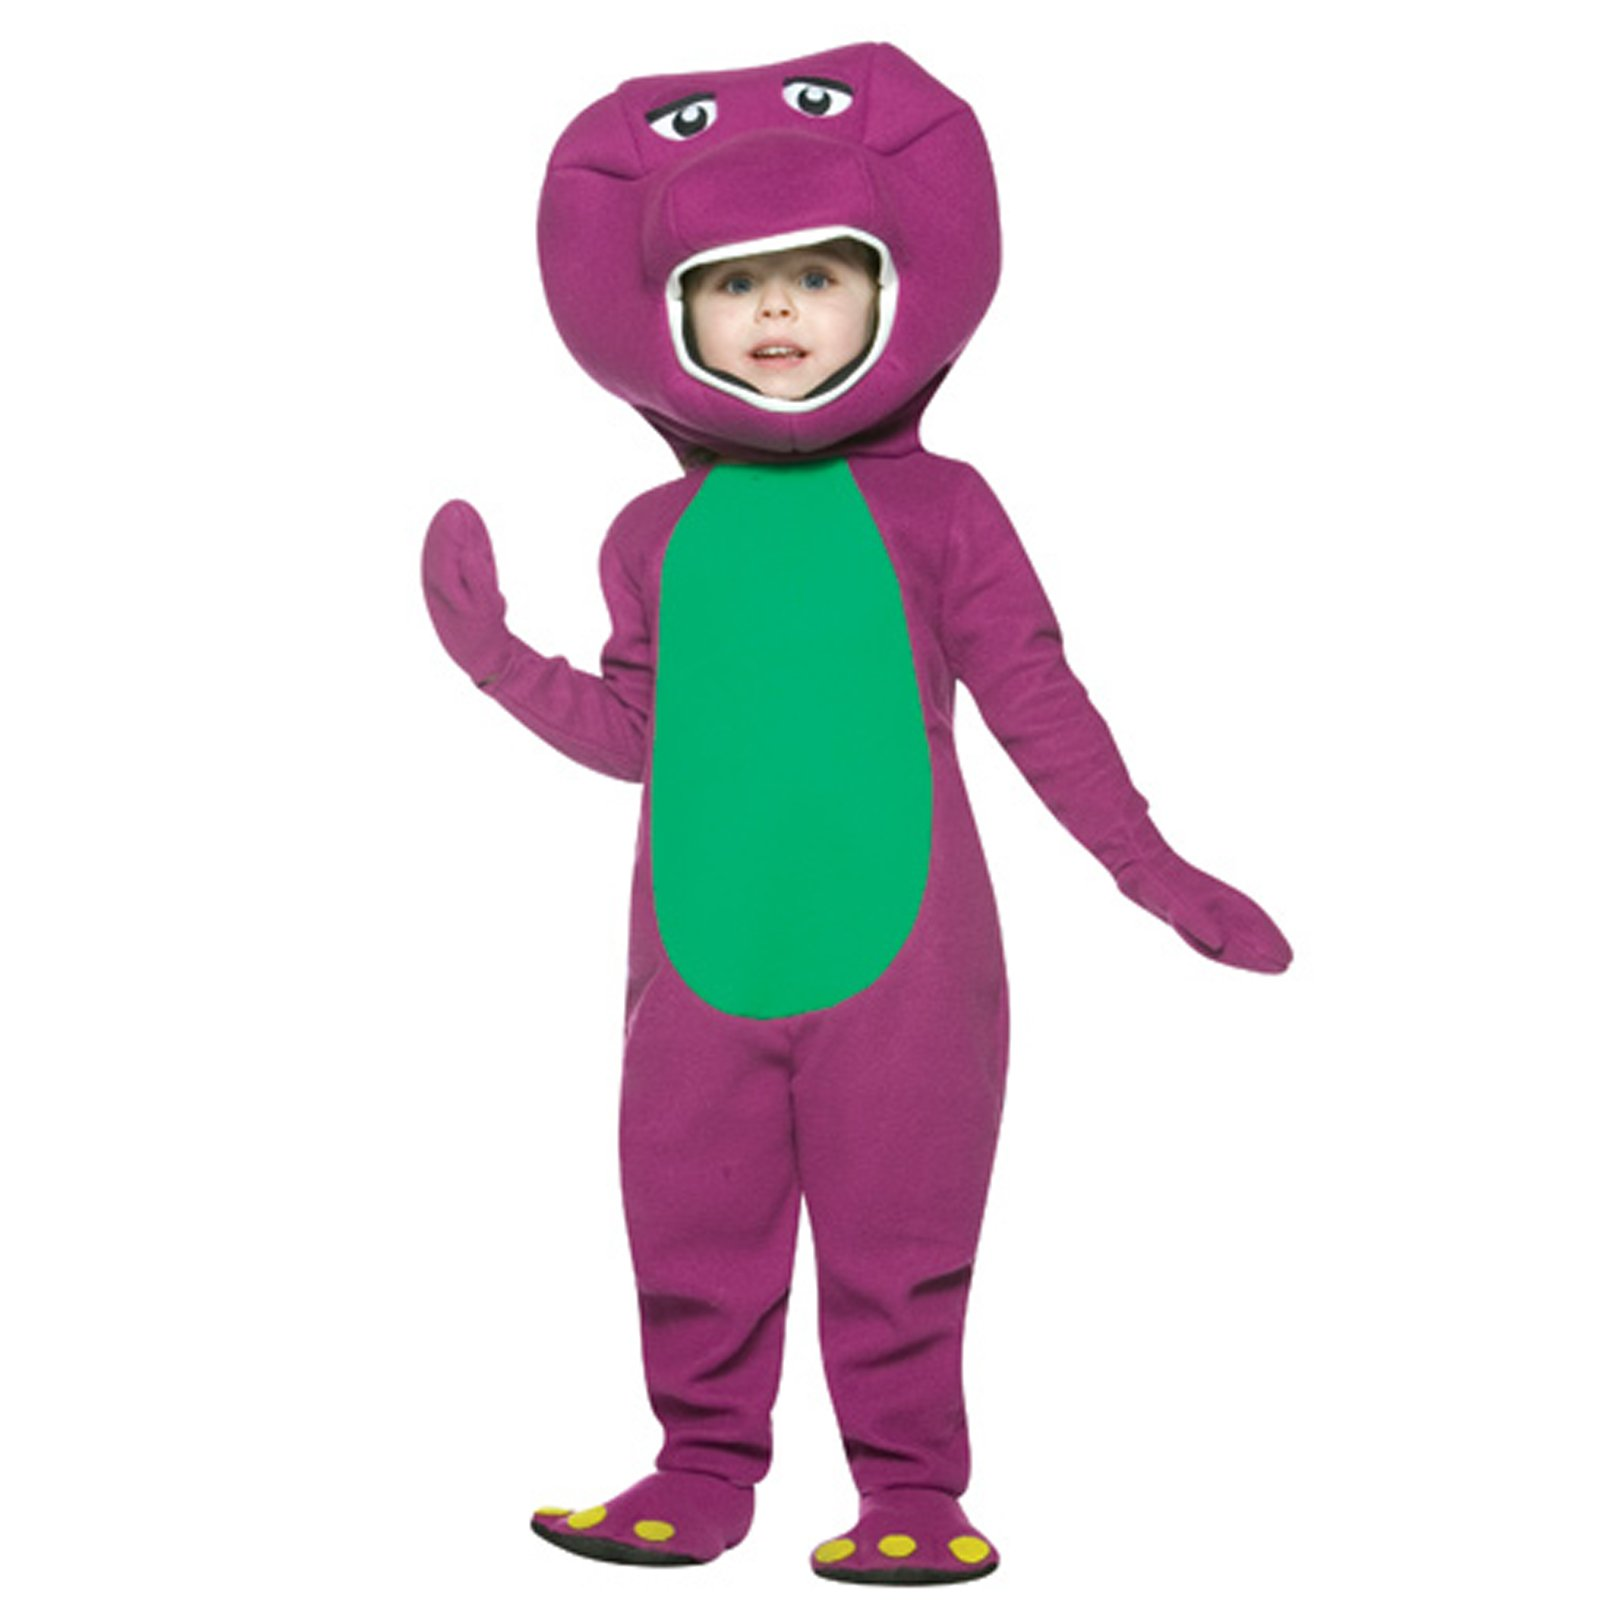 Barney and Friends-Barney Child Costume